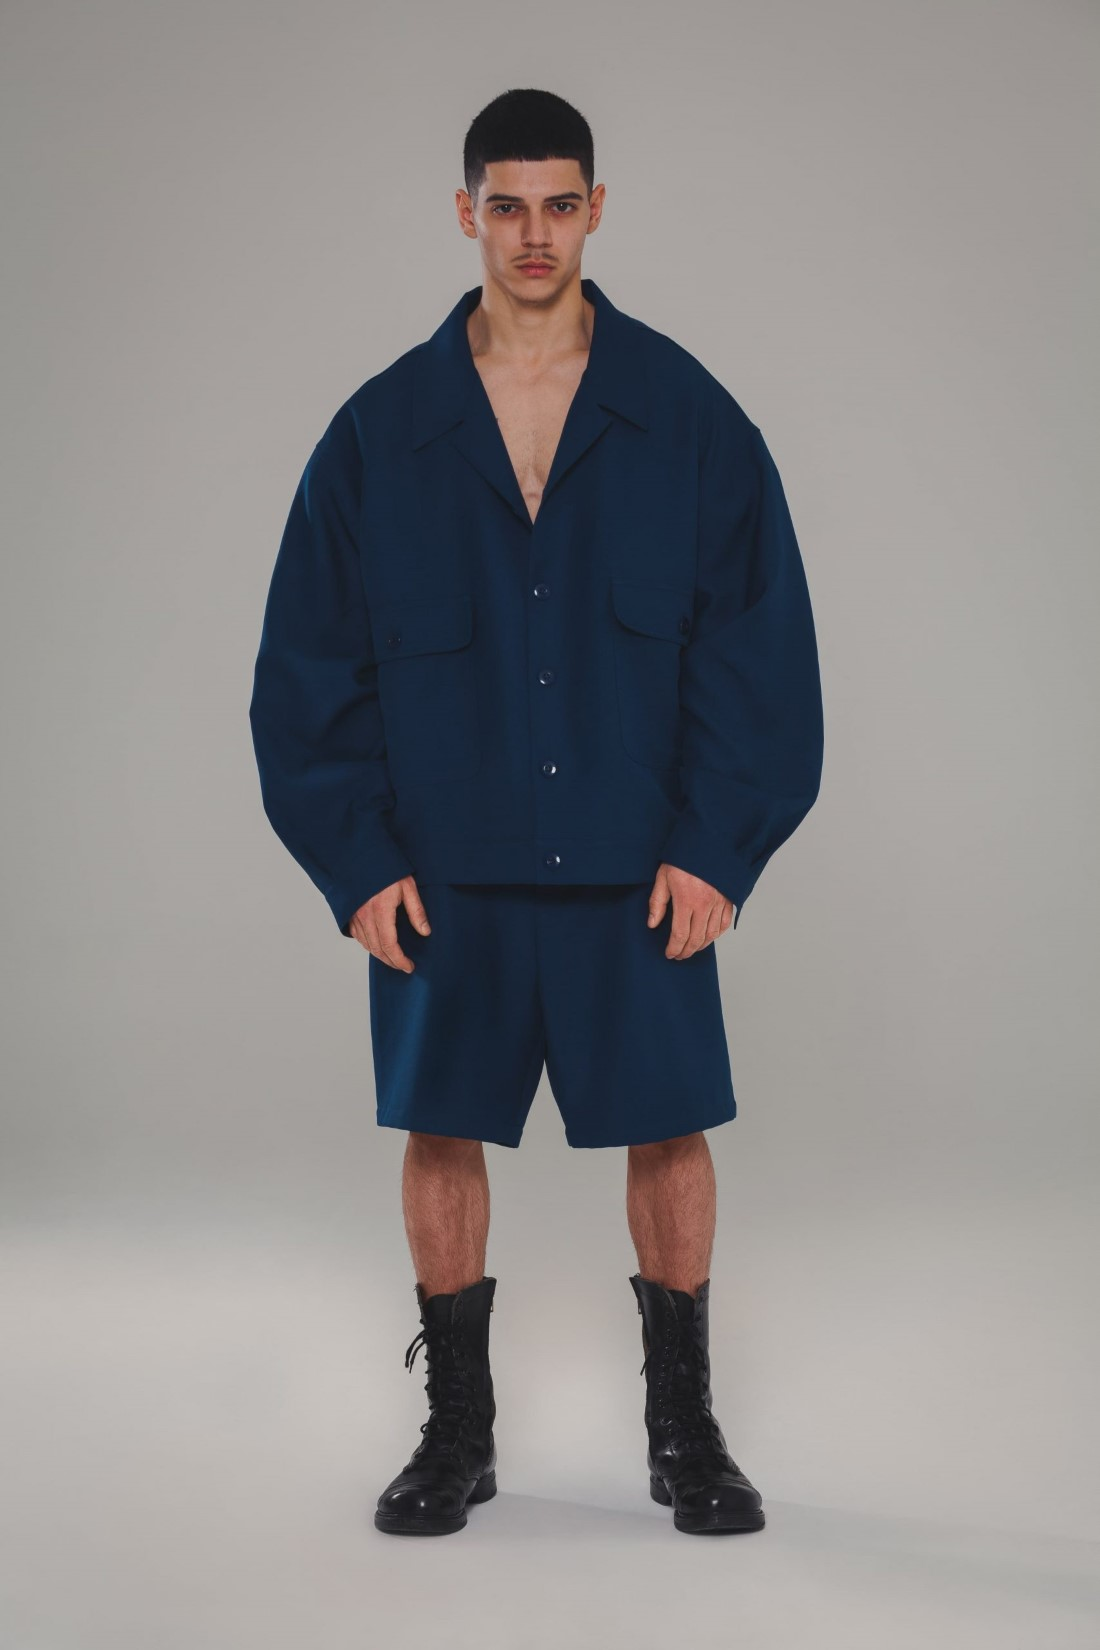 Willy Chavarria - Automne-Hiver 2021 - New York Fashion Week